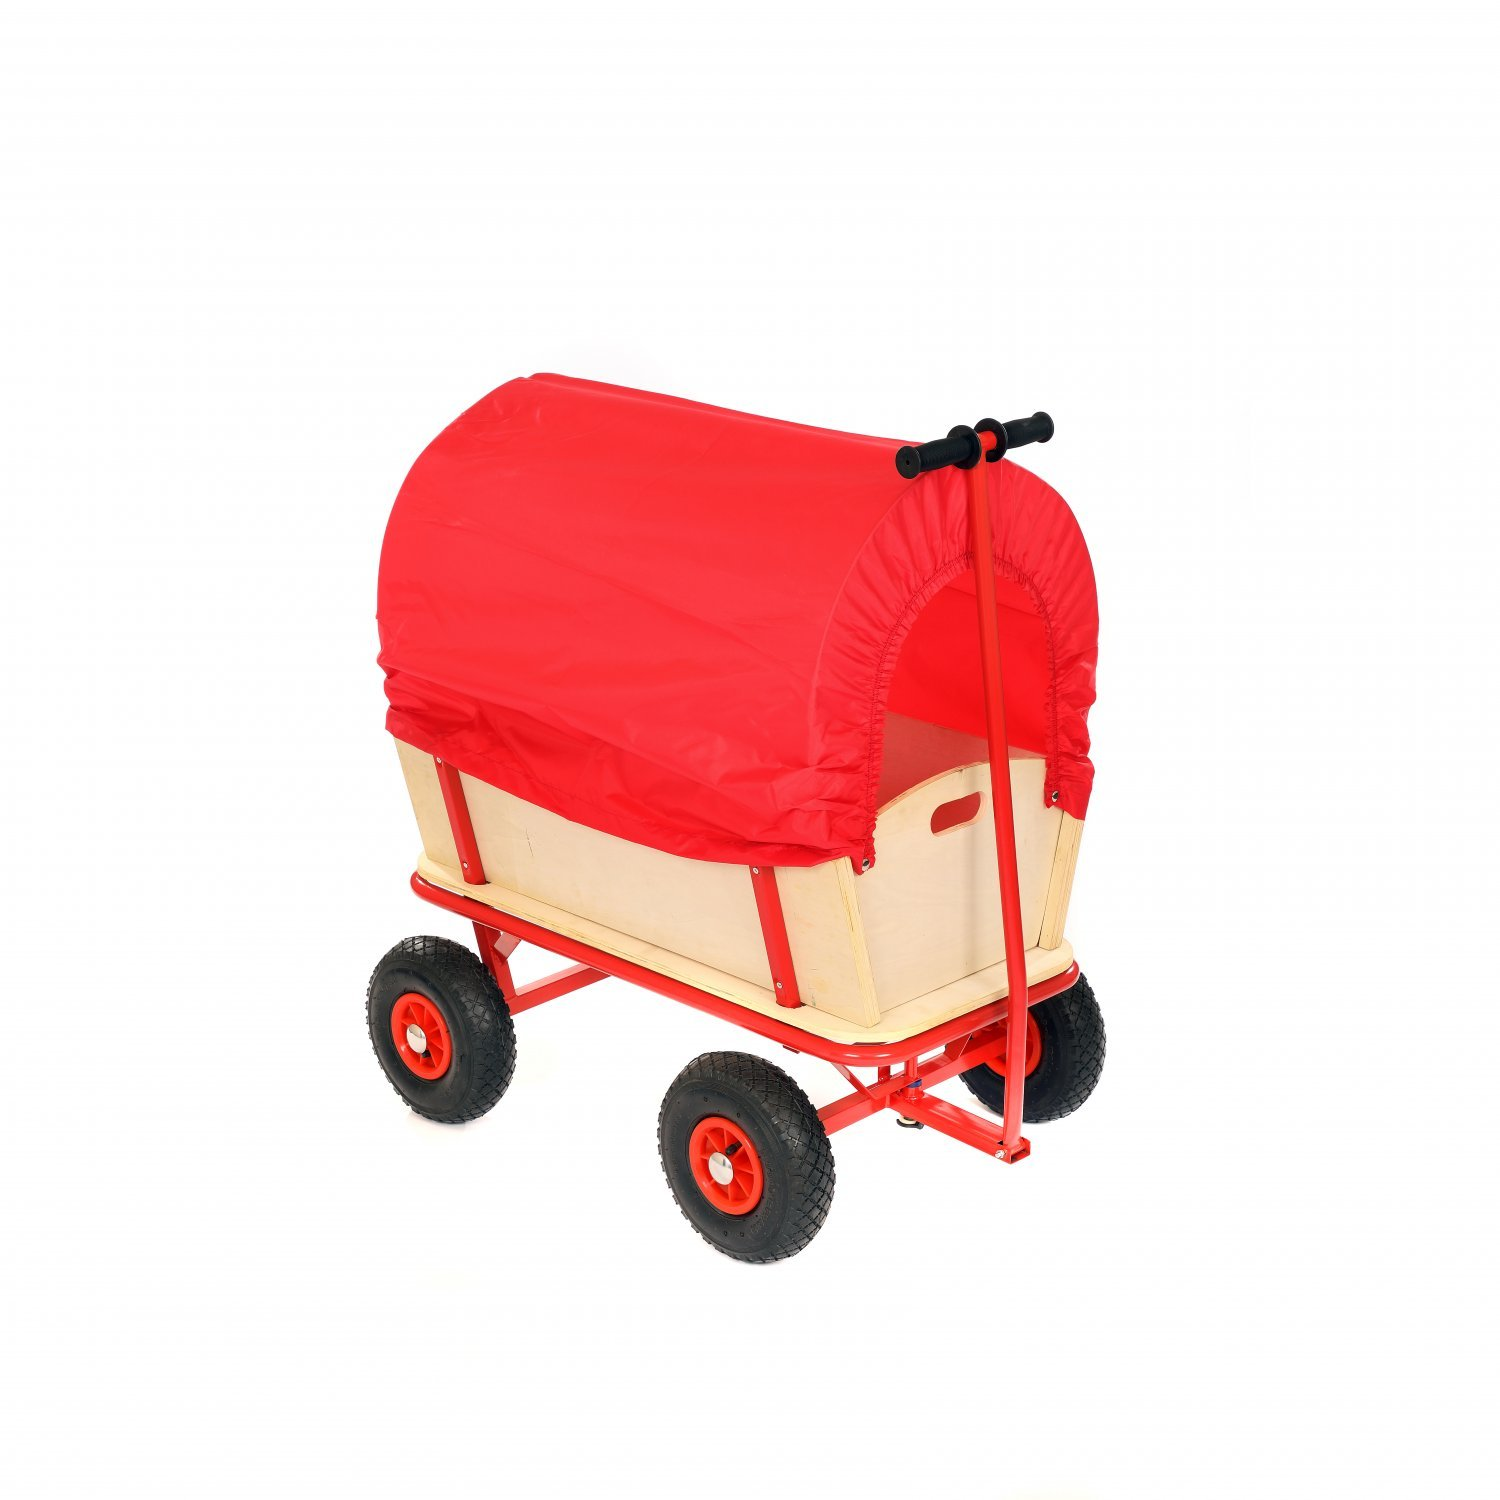 Childrens Kids Pull Along Toy Wagon Cart Trolley With